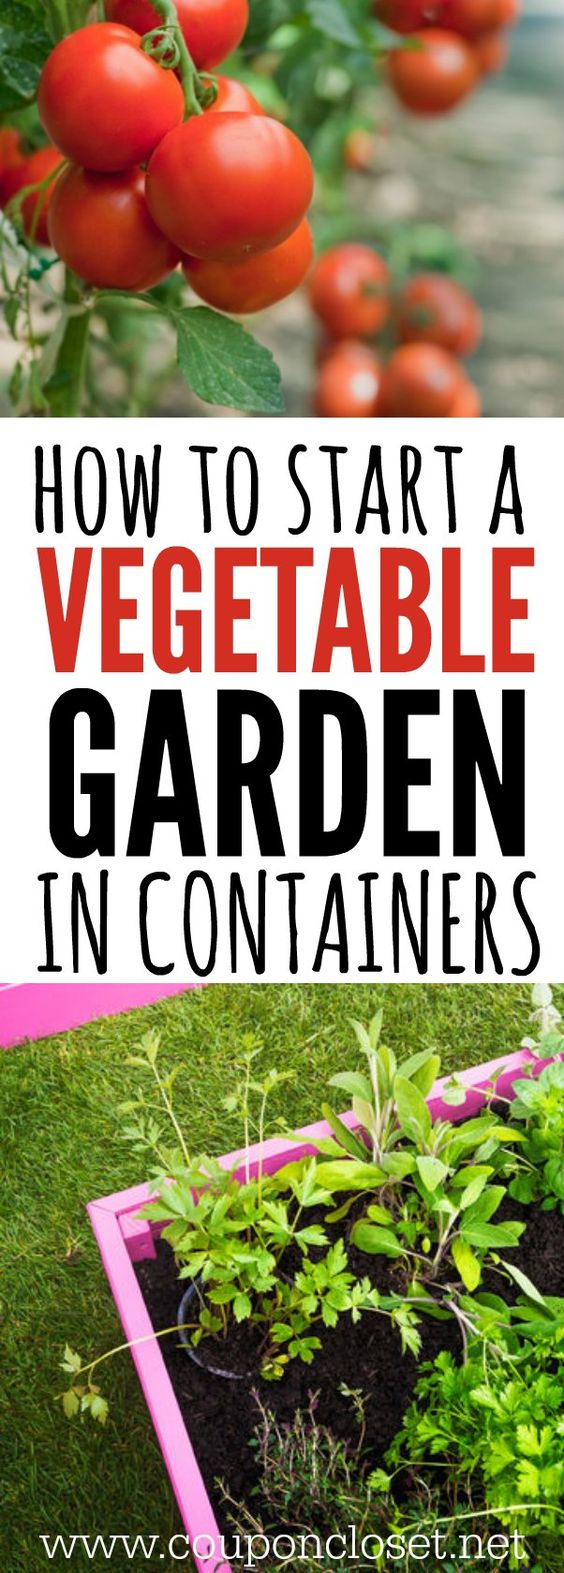 10 Pinteresting People Teach Us How To Grow a Vegetable Garden – When Do You Start Planting a Garden